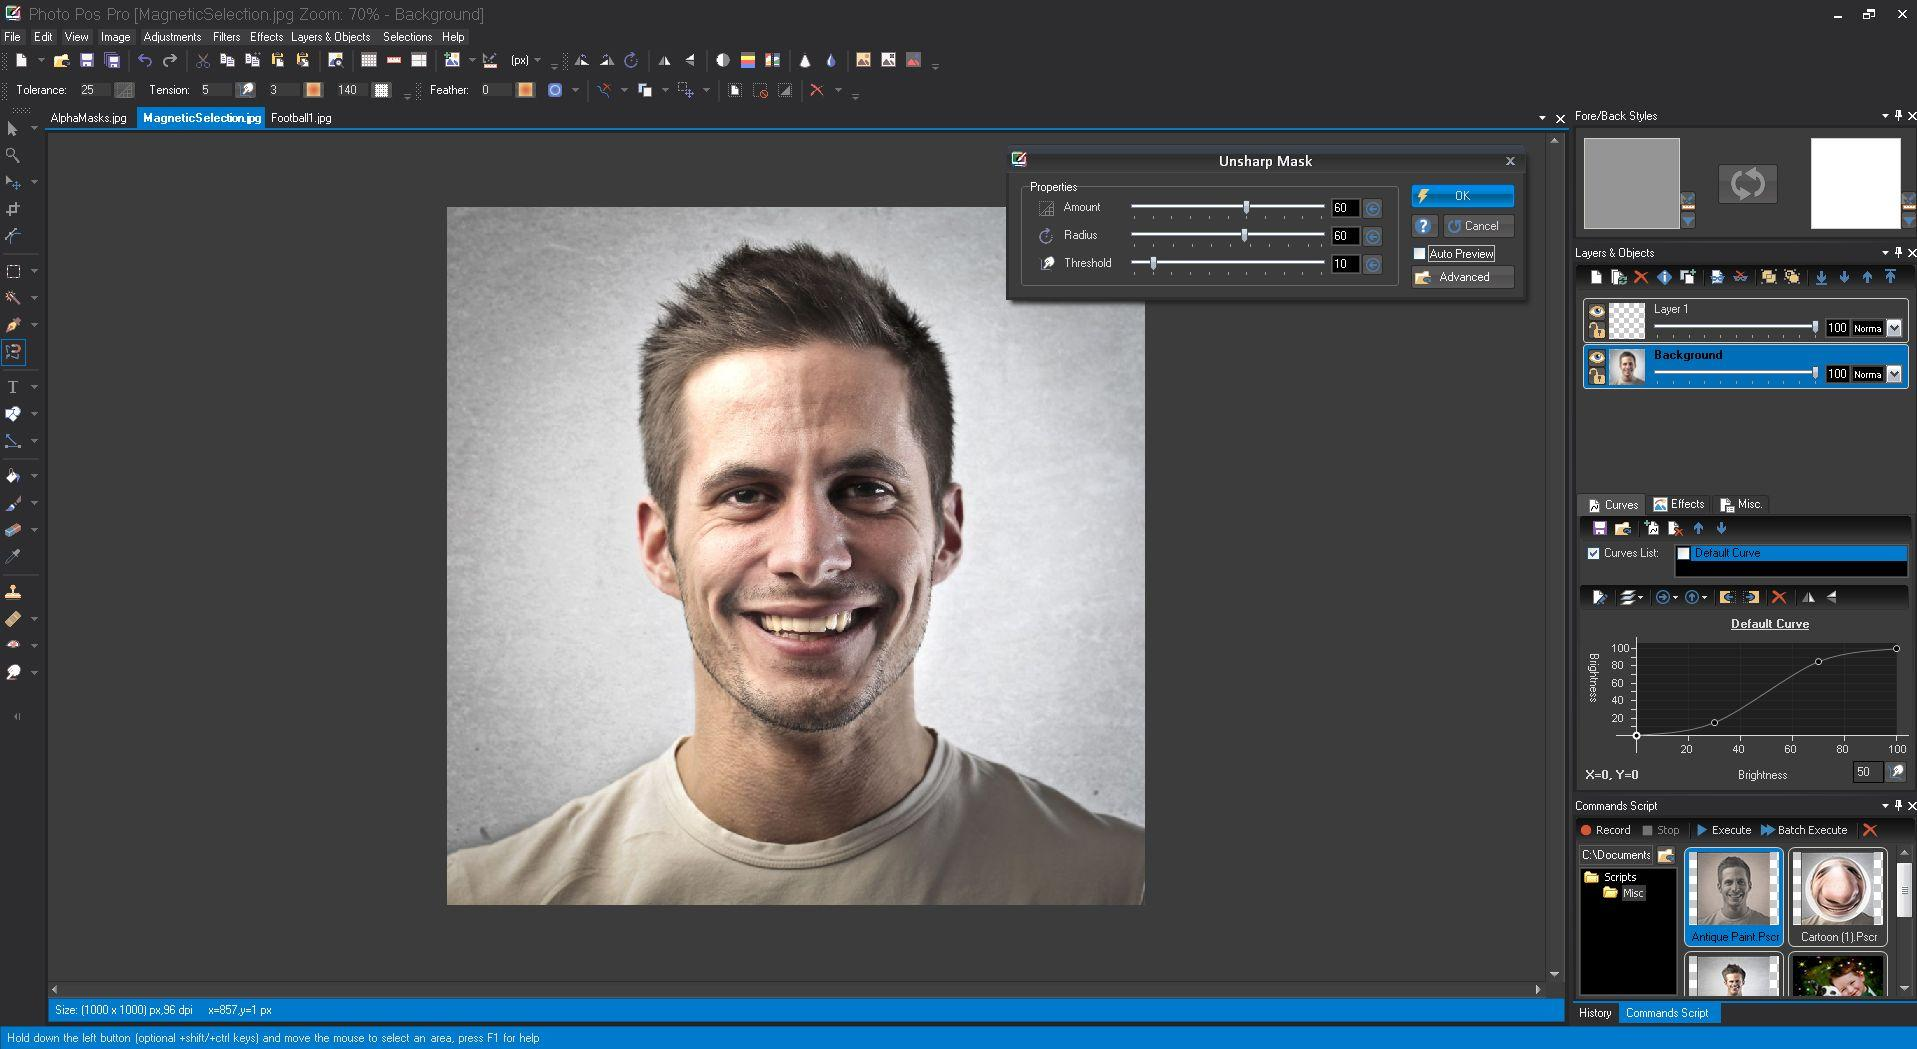 best free photo editing software - photo pos pro